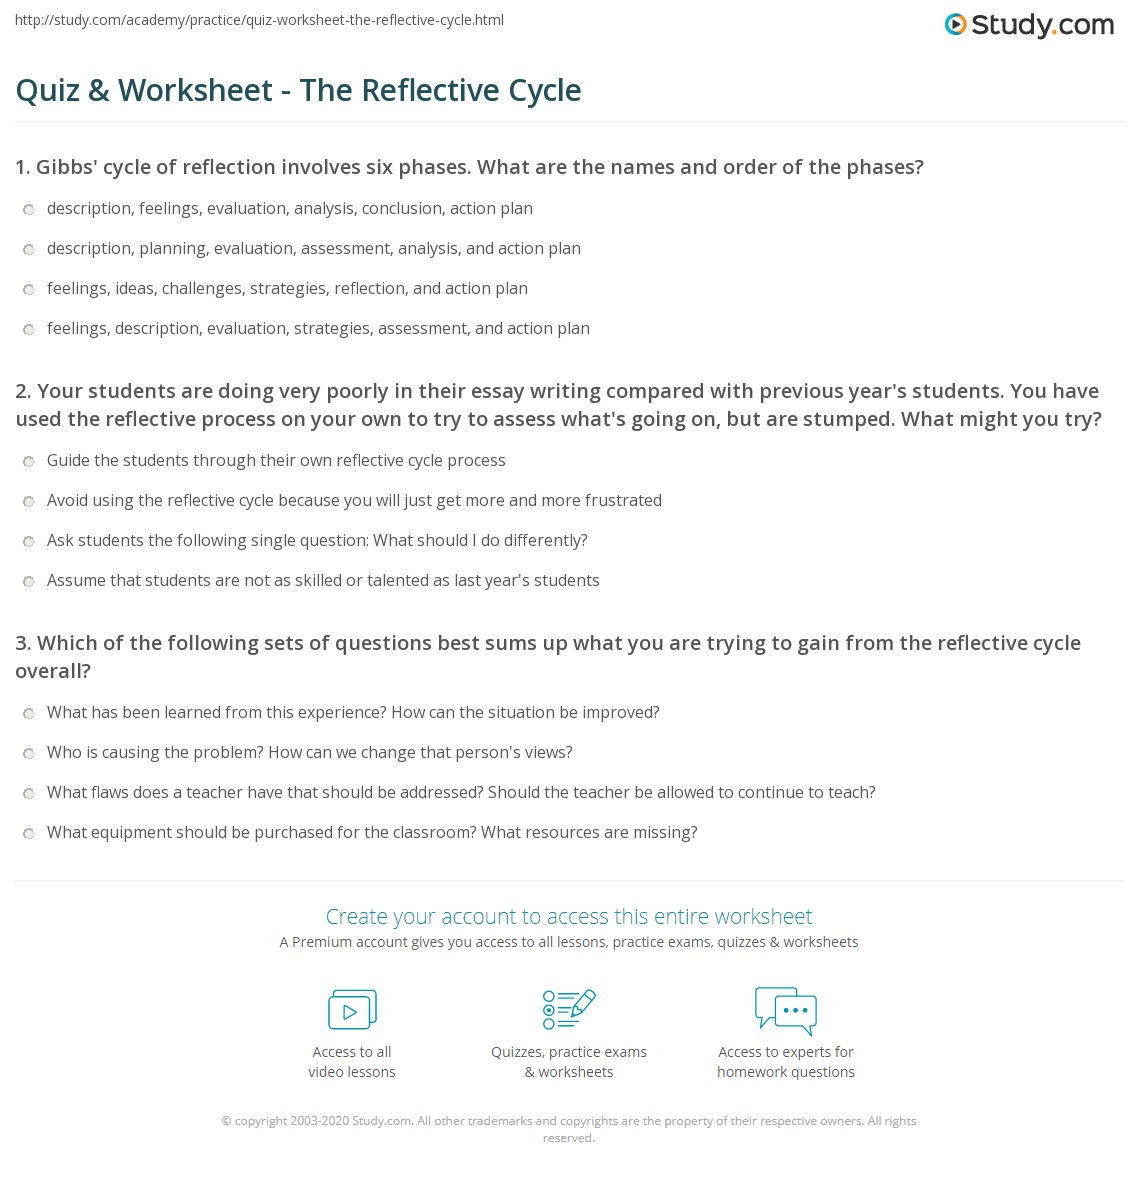 quiz worksheet the reflective cycle com your students are doing very poorly in their essay writing compared previous year s students you have used the reflective process on your own to try